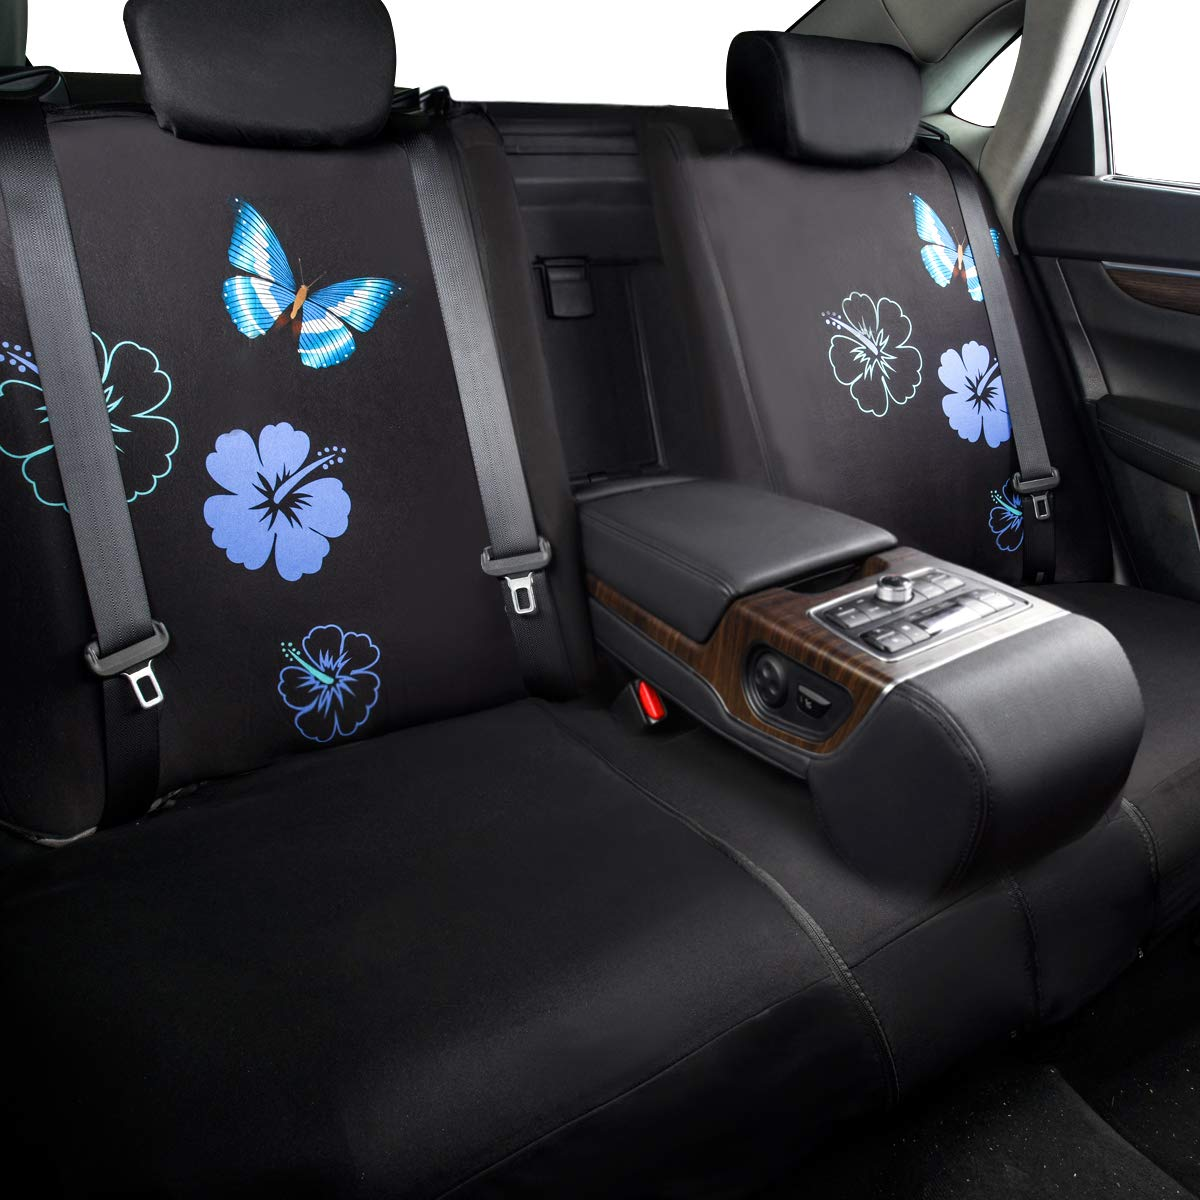 NEW ARRIVAL 2Front seat covers, Black and Purple color CAR PASS Flower And Butterfly Universal Car Seat Covers,Perfect Fit Suvs,sedans,Vehicles,Airbag Compatible